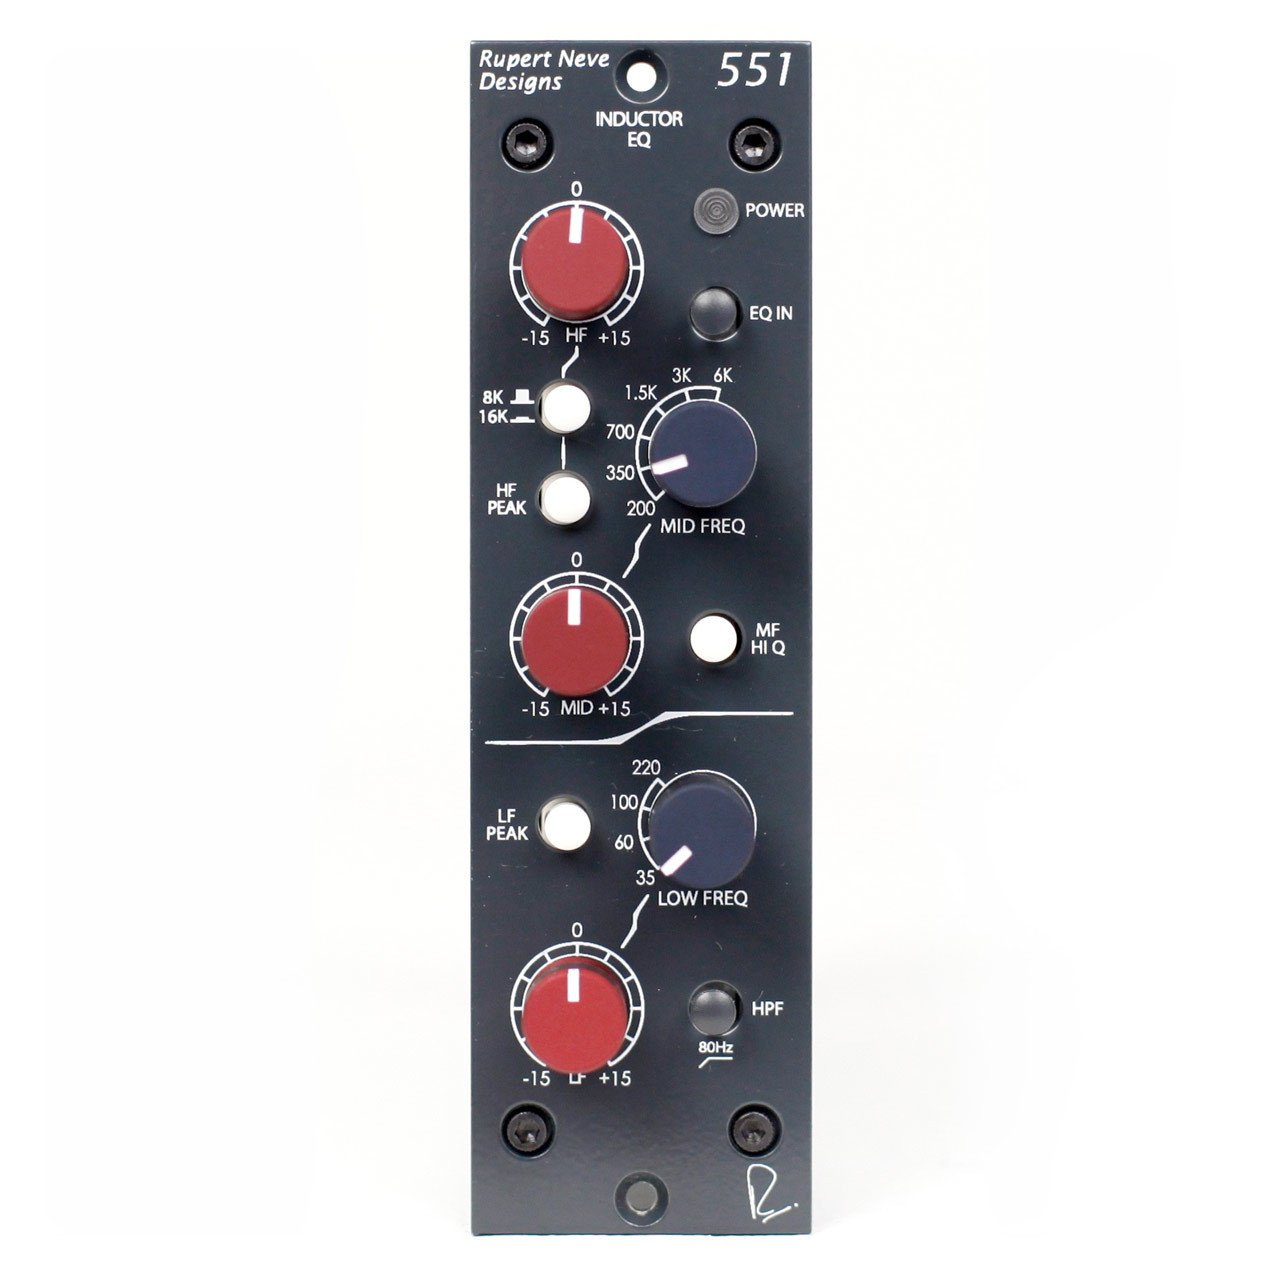 500 Series - Rupert Neve Designs 551 - 500 Series Inductor EQ